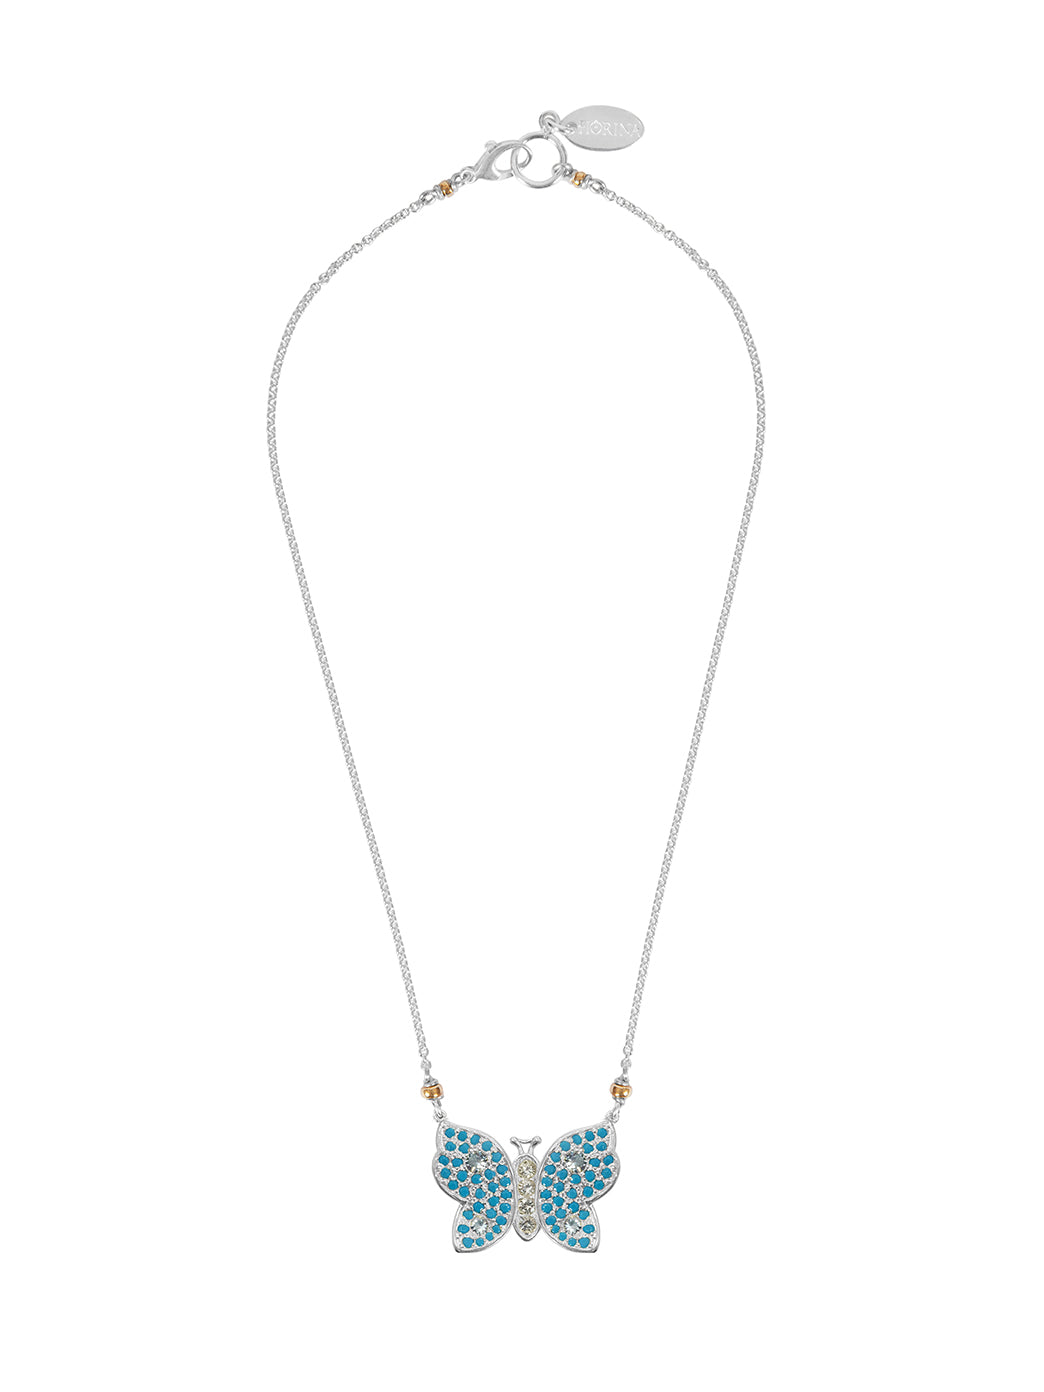 Fiorina Jewellery La Vie Butterfly Turquoise Necklace